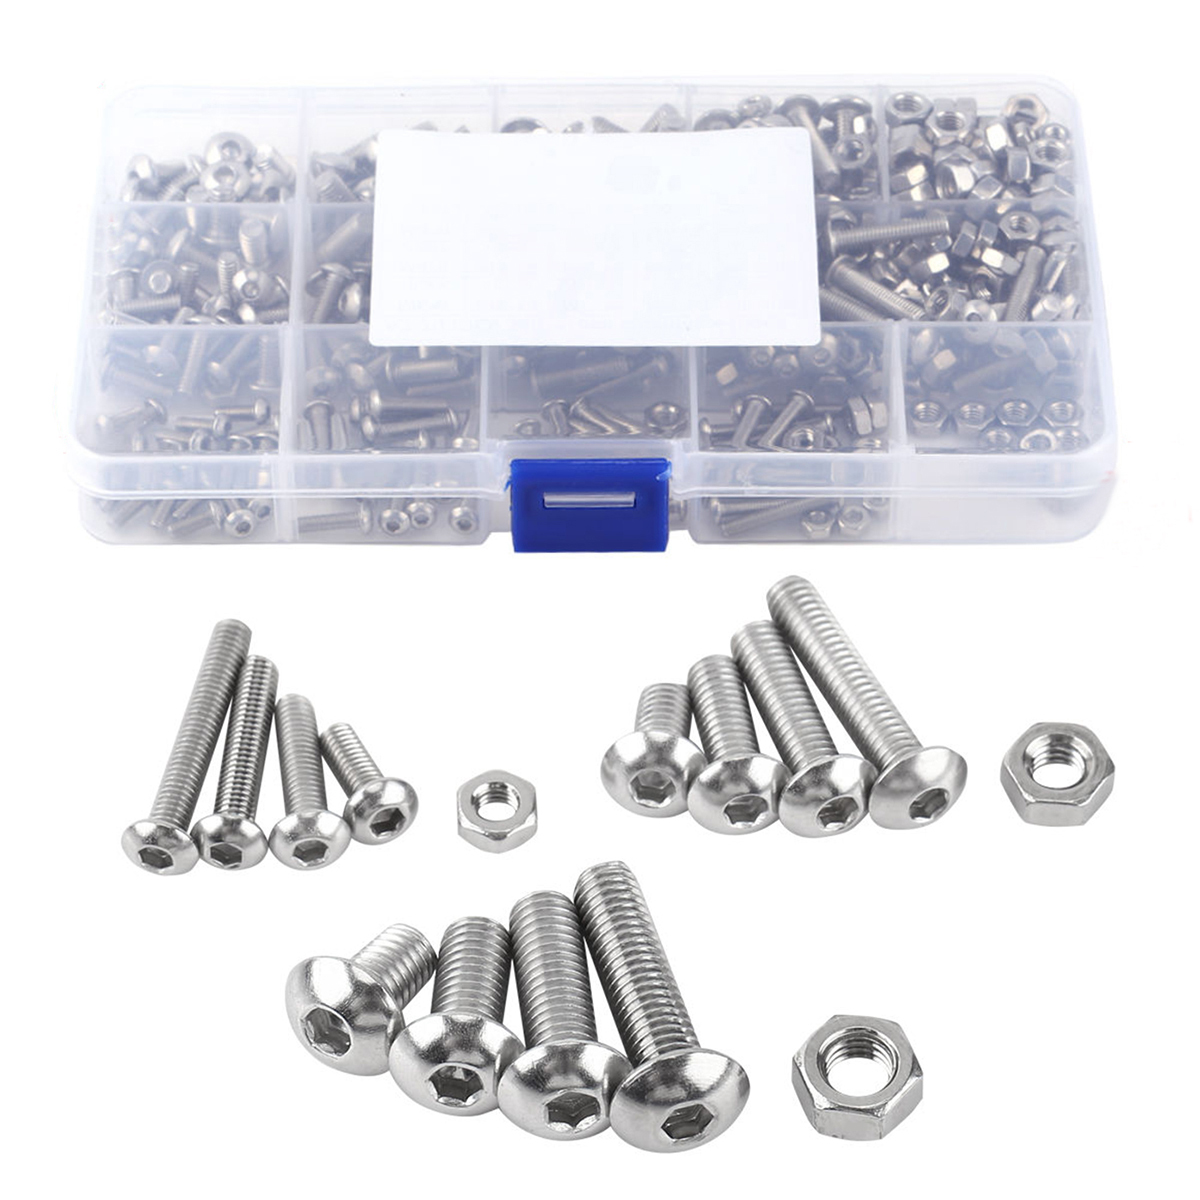 440pcs Mayitr M3 M4 M5 Hex Socket Screws Nuts Stainless Steel Button Head Bolts Assortment Kit Set